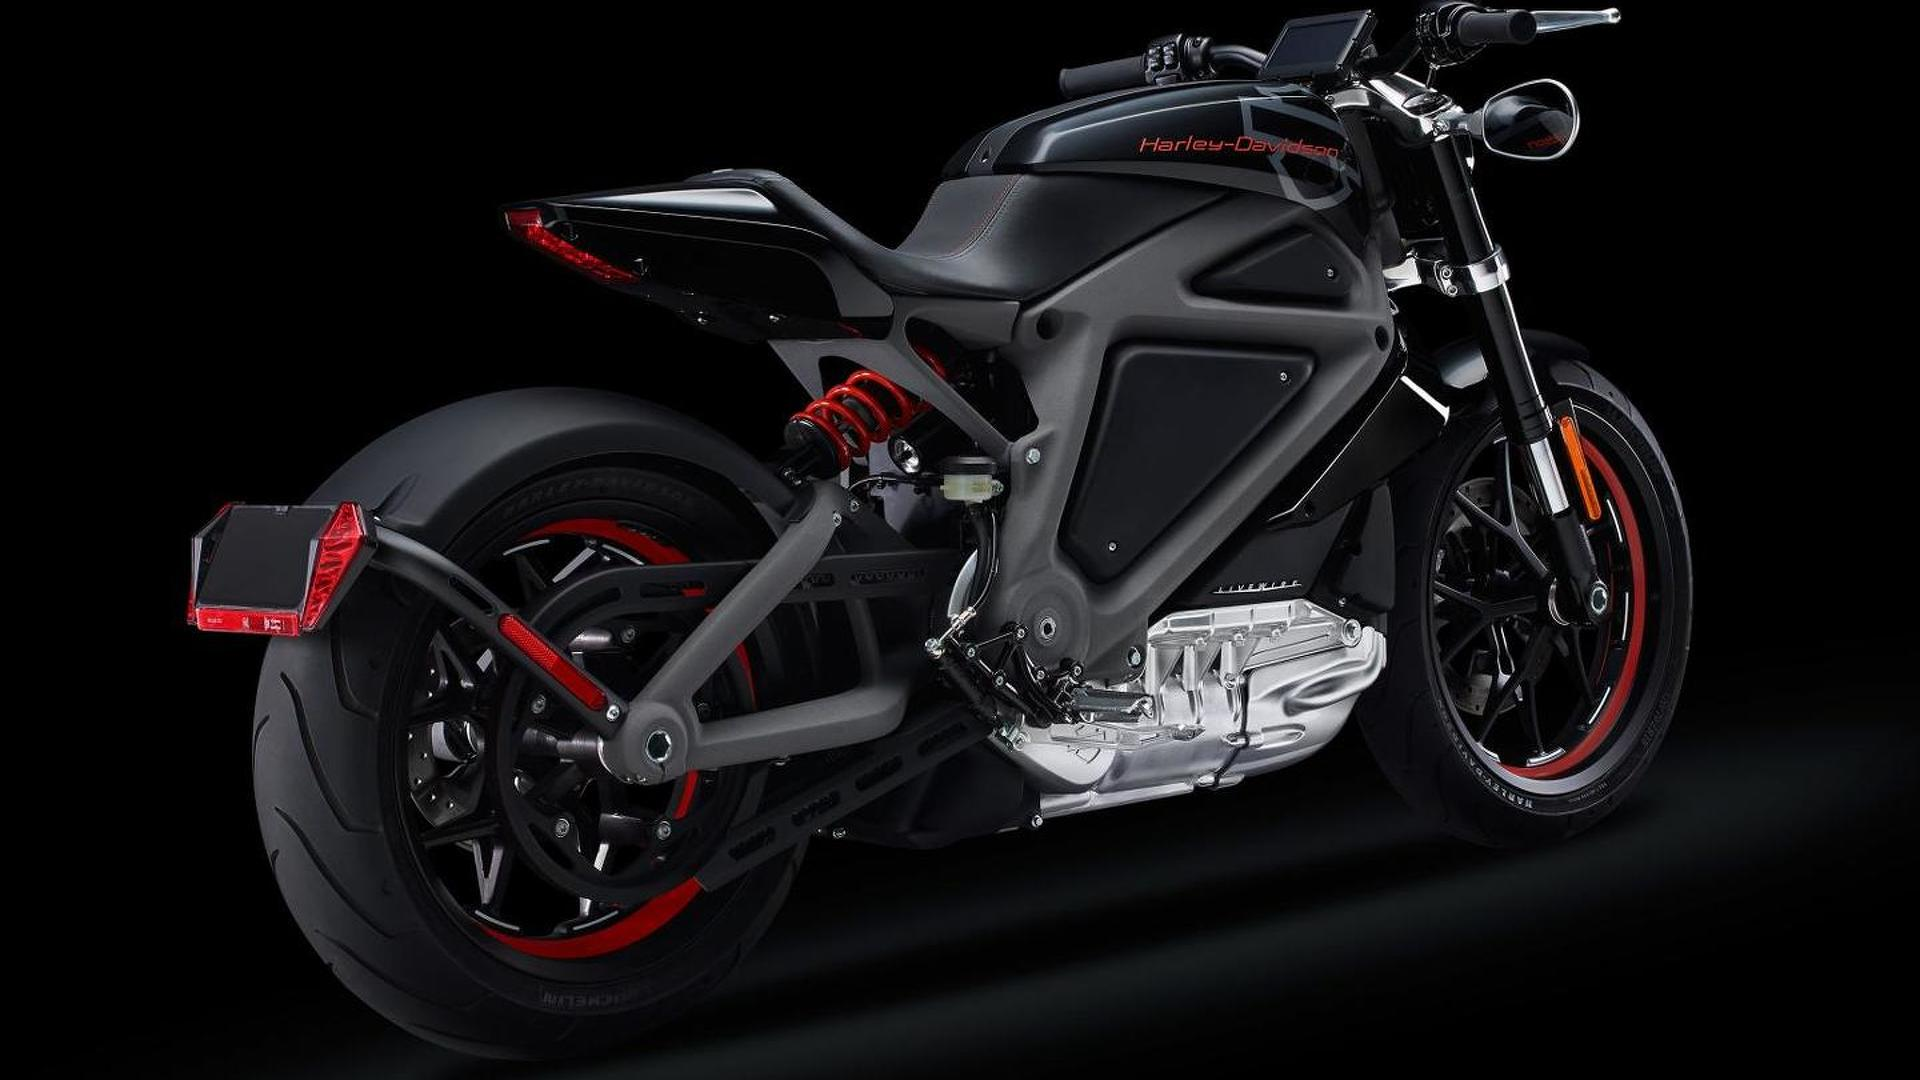 Harley-Davidson Project LiveWire revealed as their first electric motorcycle